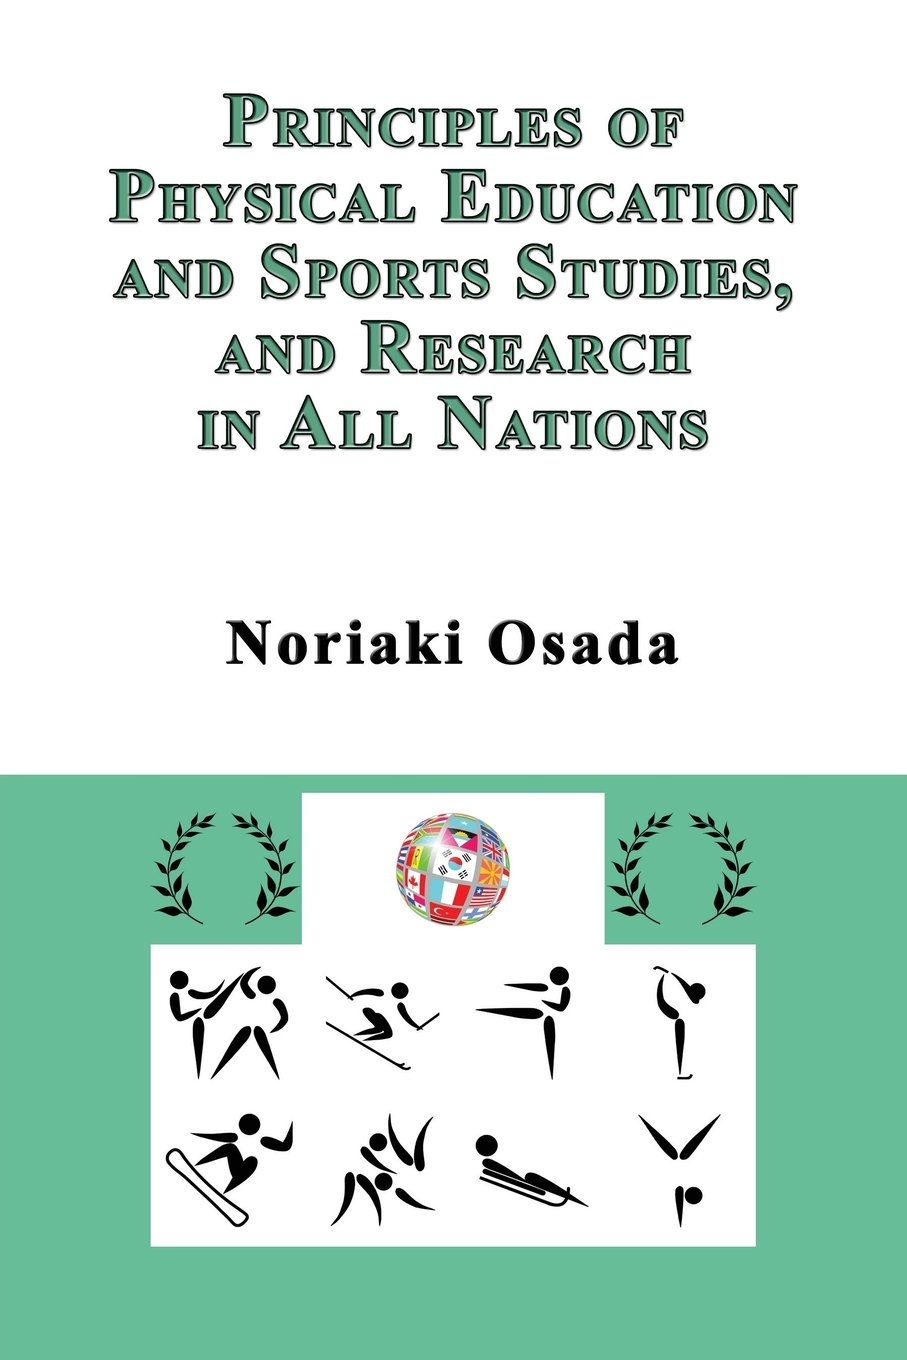 Principles of Physical Education and Sports Studies, and Research in All Nations pdf